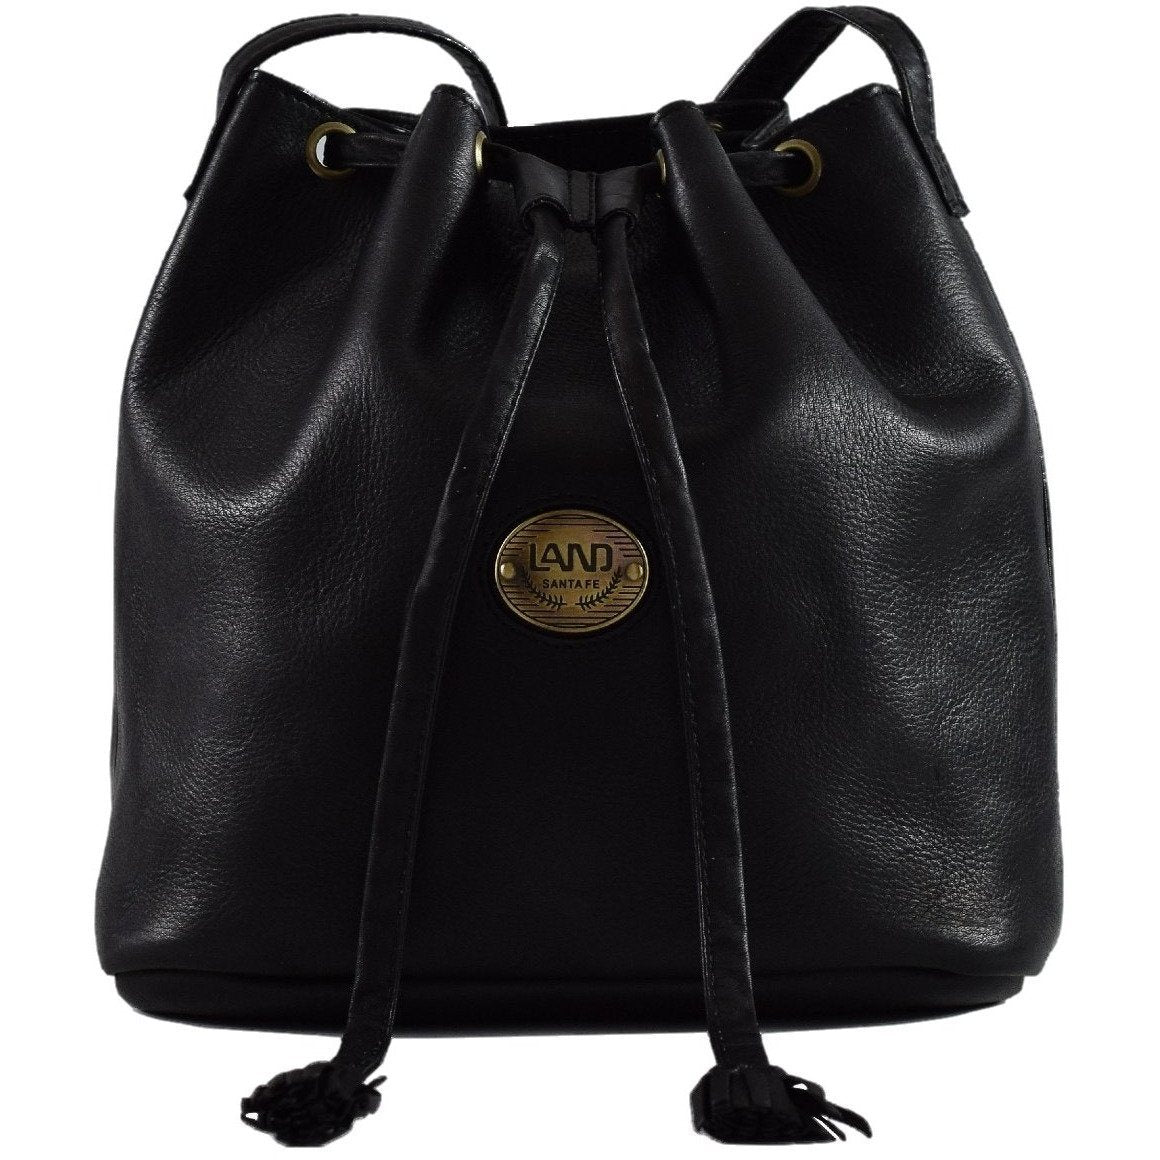 Santa Fe Gracie Drawstring, Crossover Bag | LAND Leather